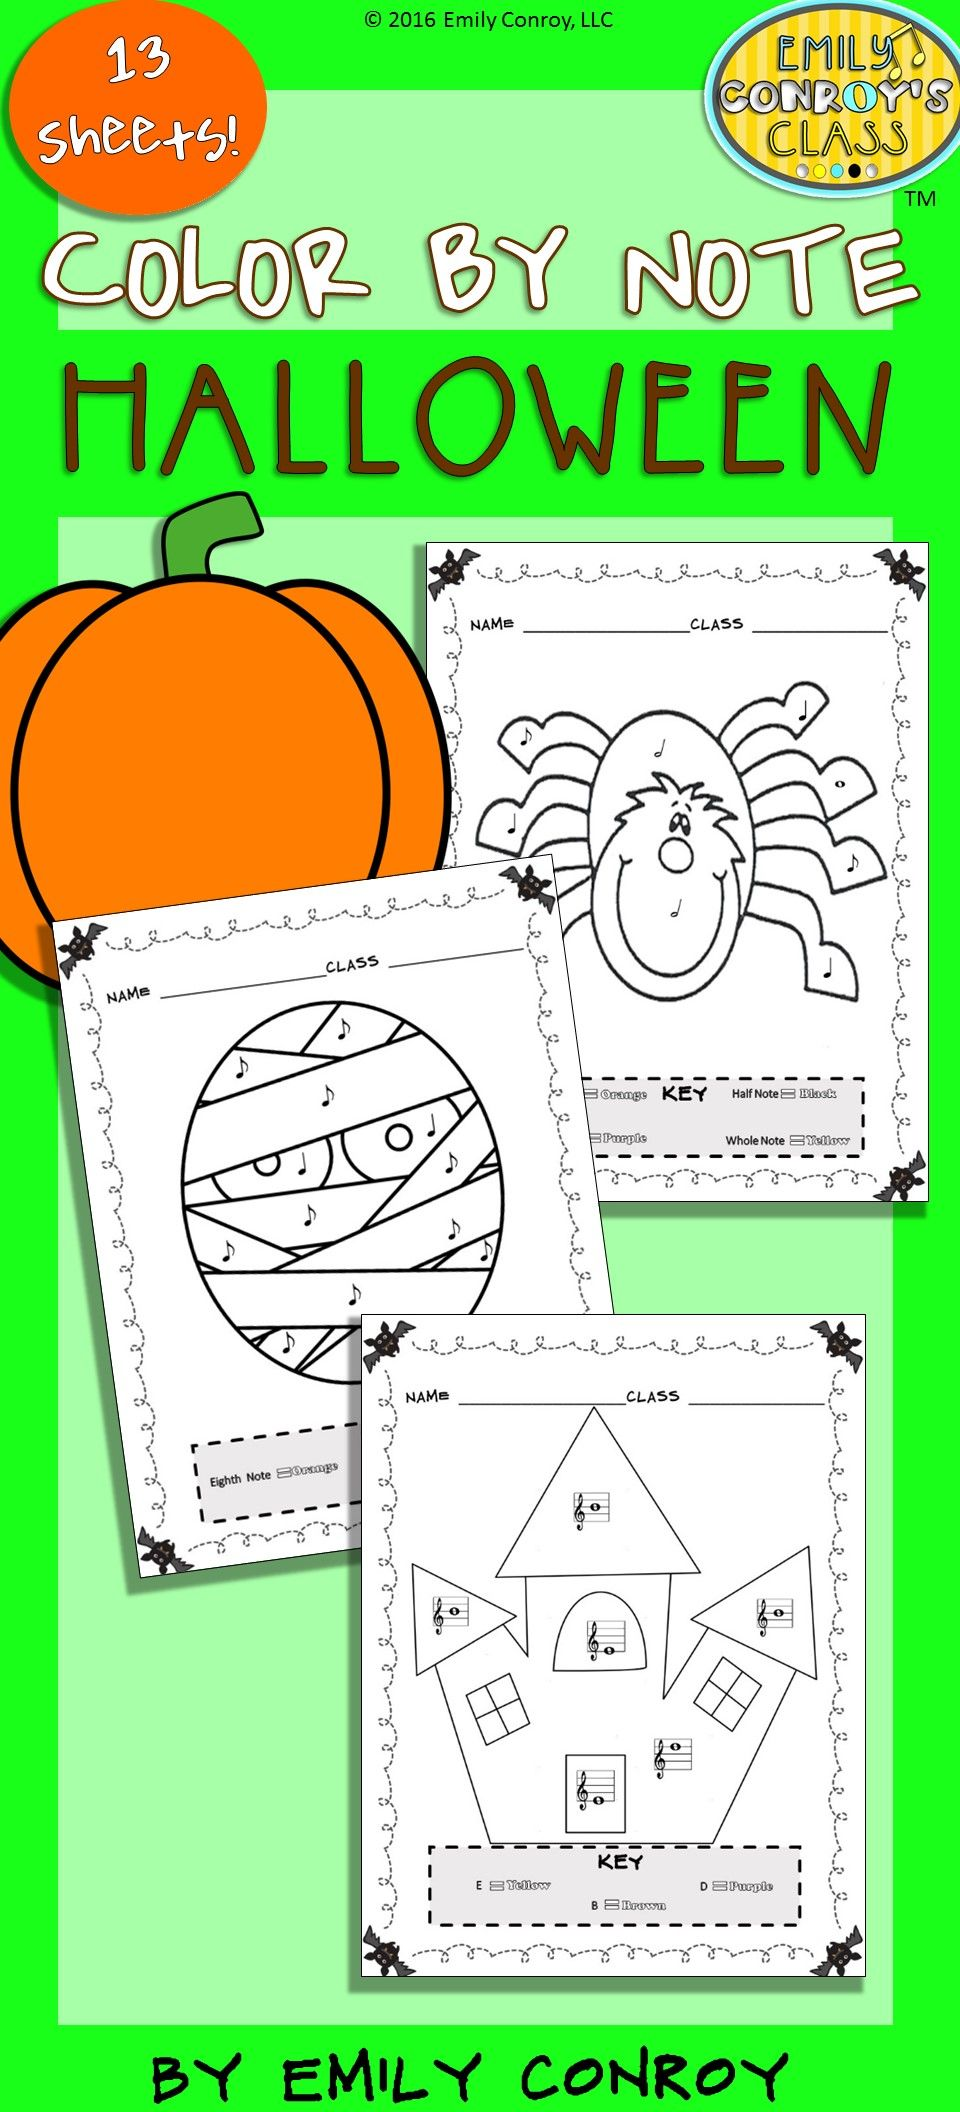 Color by Note (Halloween) contains 13 music coloring sheets for ...